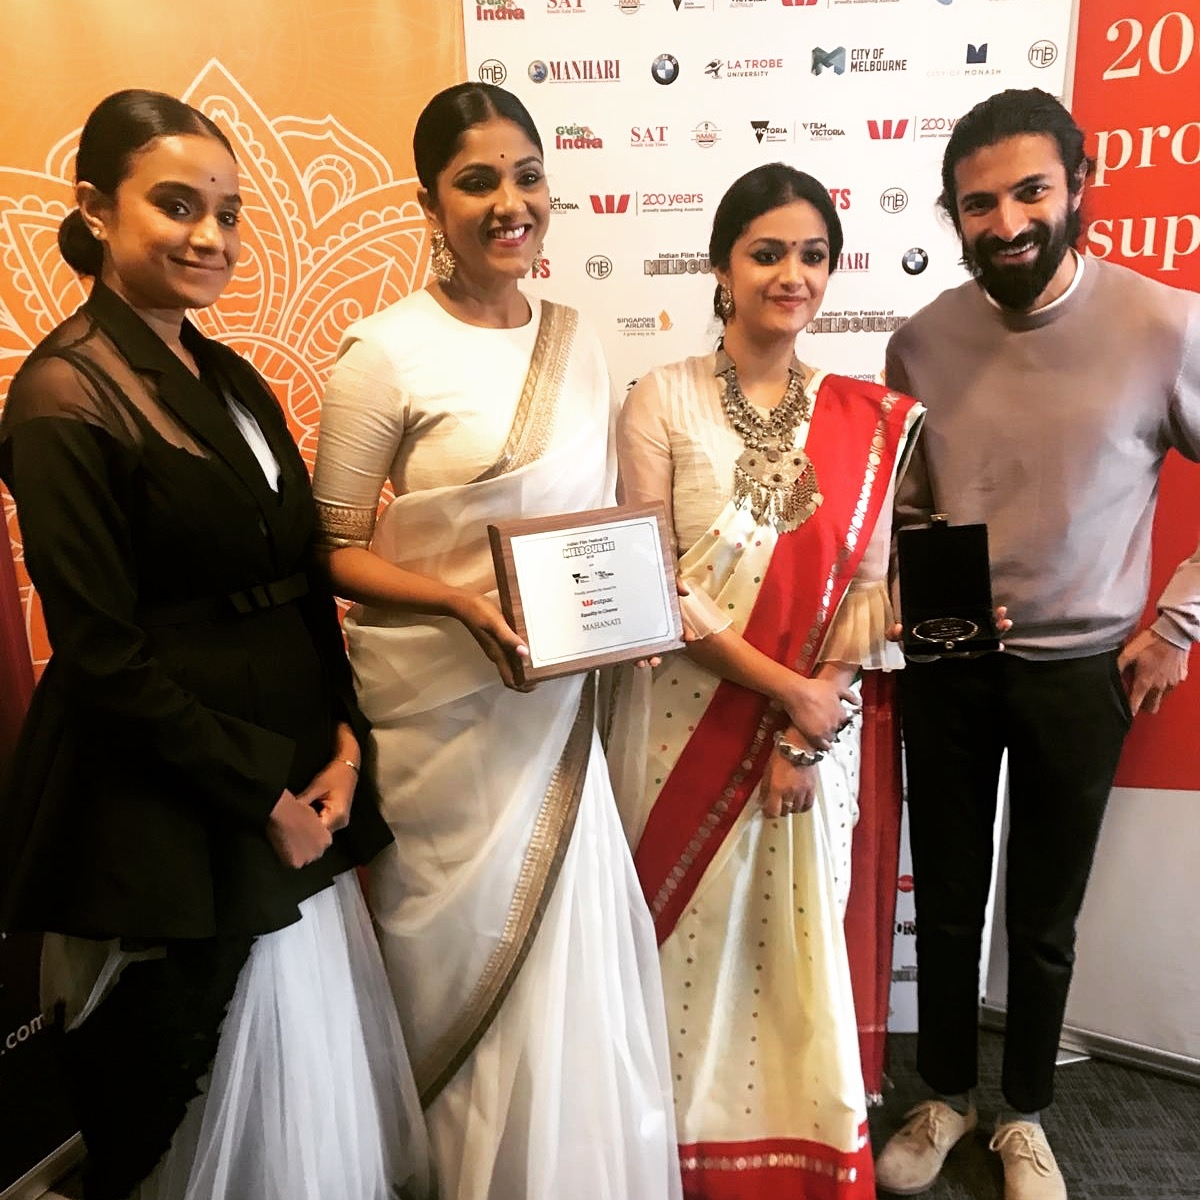 Melbourne: Director Nag Ashwin, actress Keerthy Suresh, producers Swapna Dutt and Priyanka Dutt at the Indian Film Festival of Melbourne (IFFM) in Melbourne. (Photo: IANS) by .